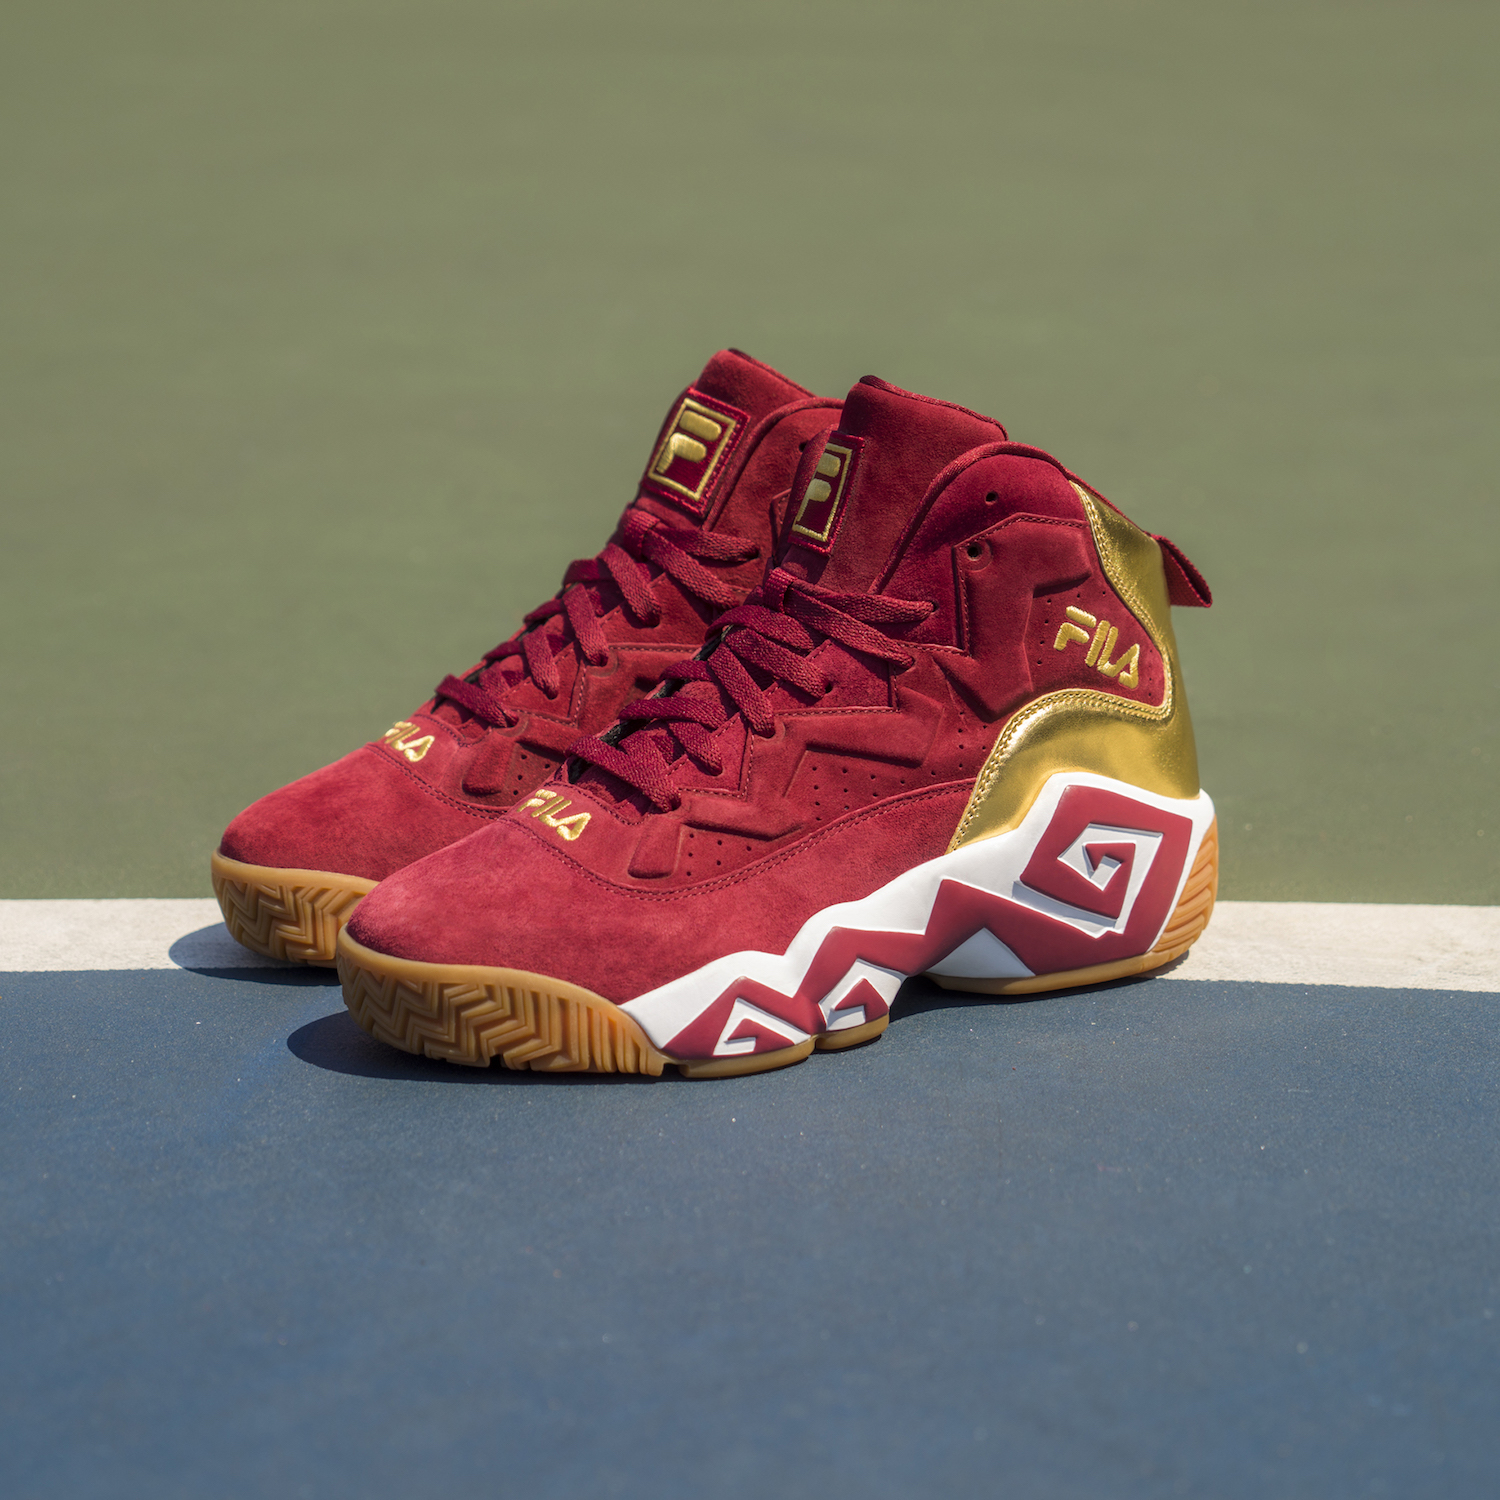 FILA MB royal beginnings 4